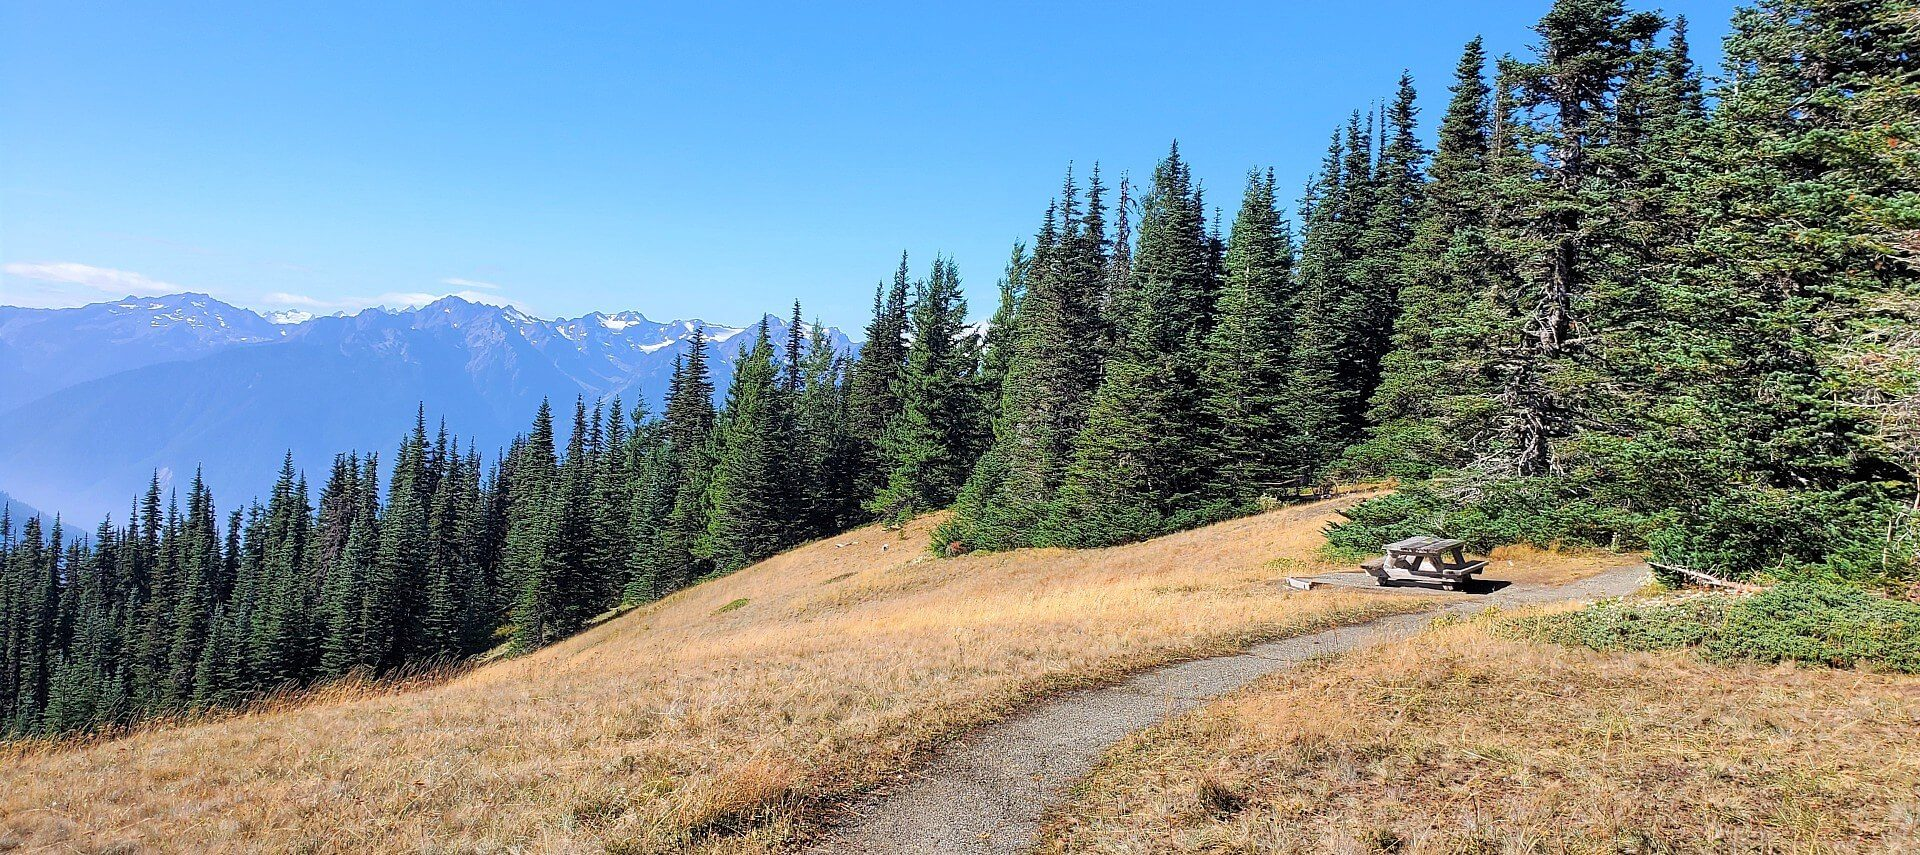 Gravel pathway at the top of a mountain with evergreen trees and snowcapped mountain range in the distance